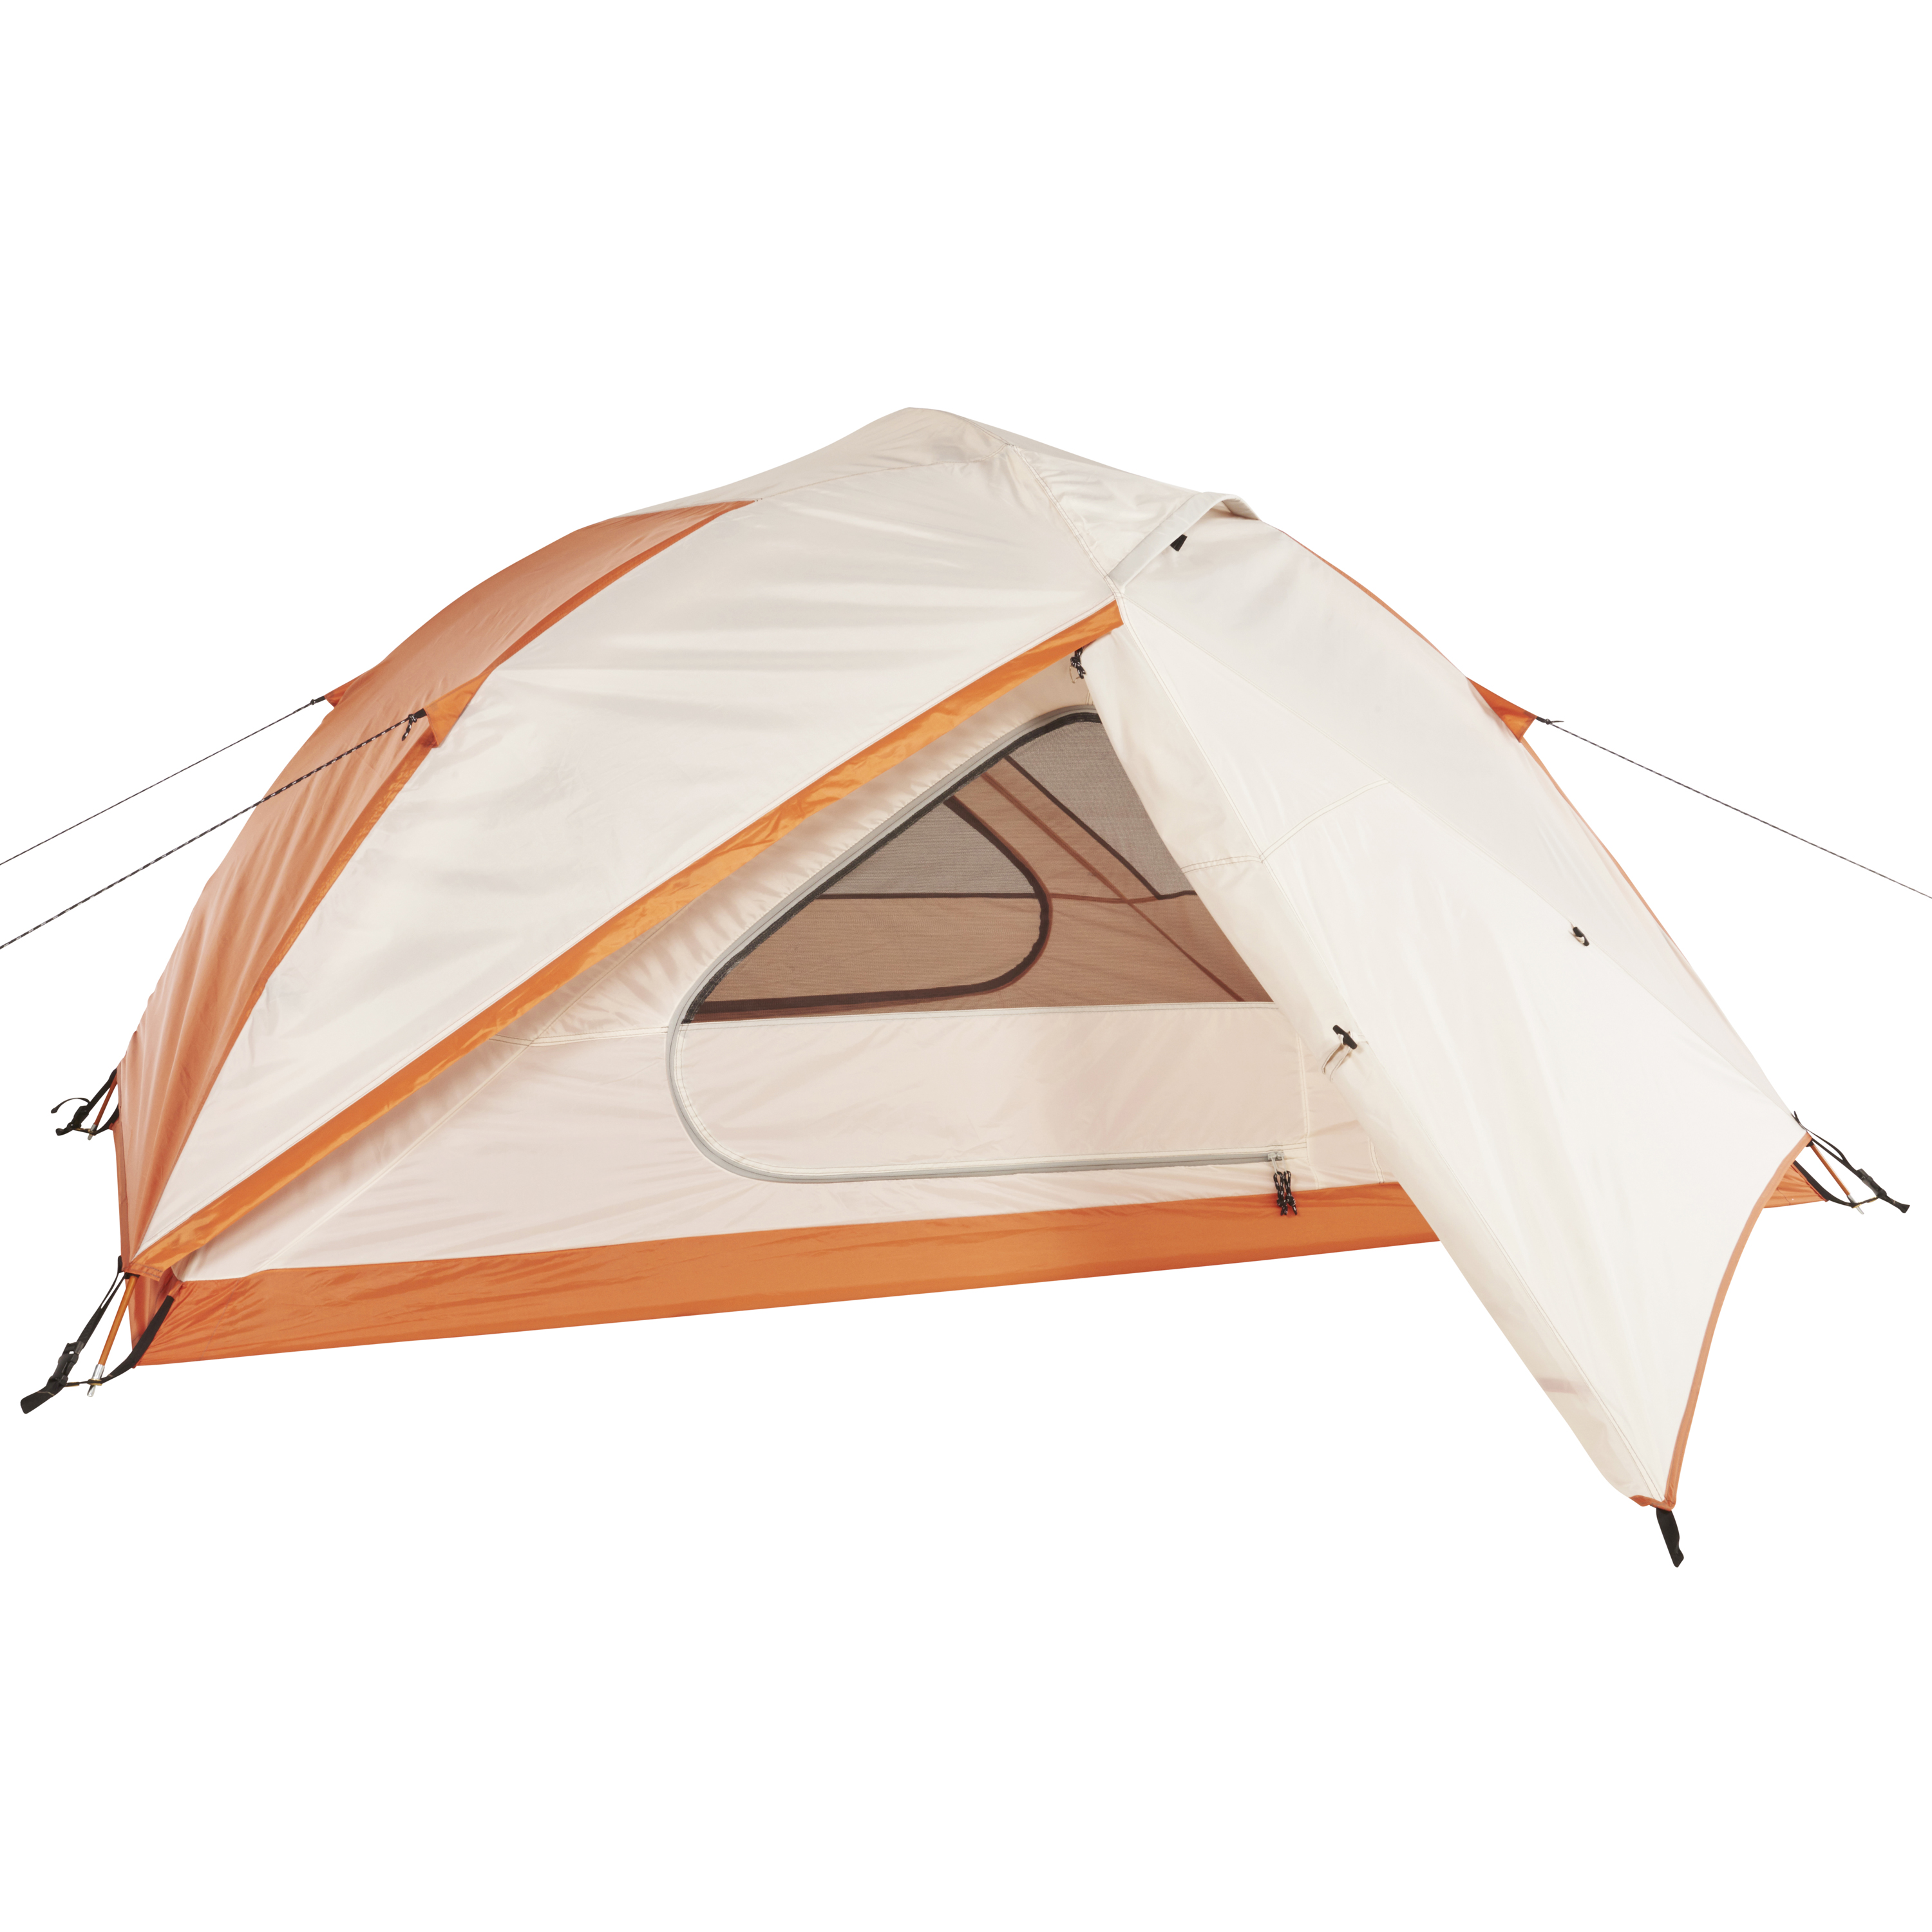 Ozark Trail 2-Person 4-Season Tent with 2 Vestibules and full fly